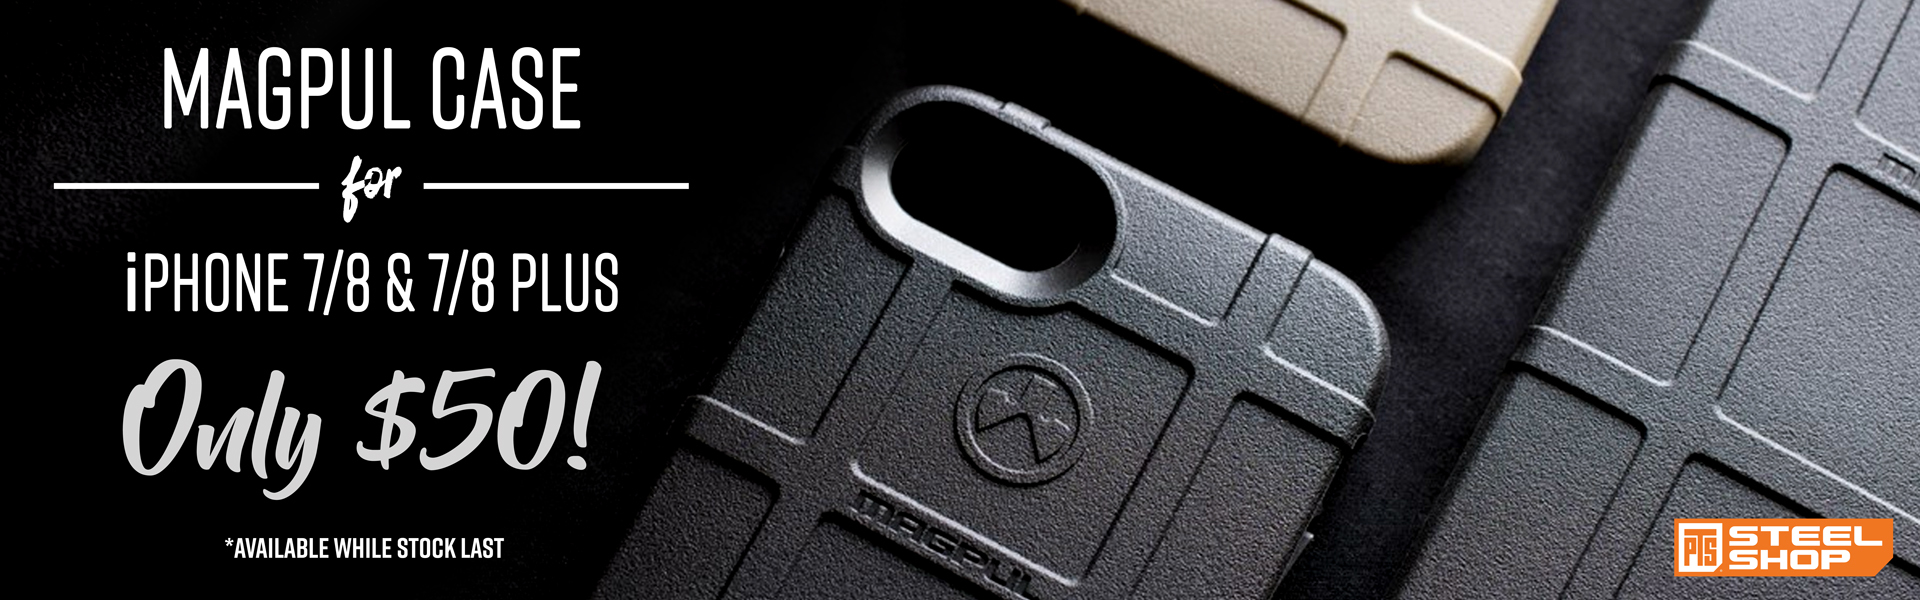 on-sale,pts steel shop,magpul,HKD$50,Field Case,phone case